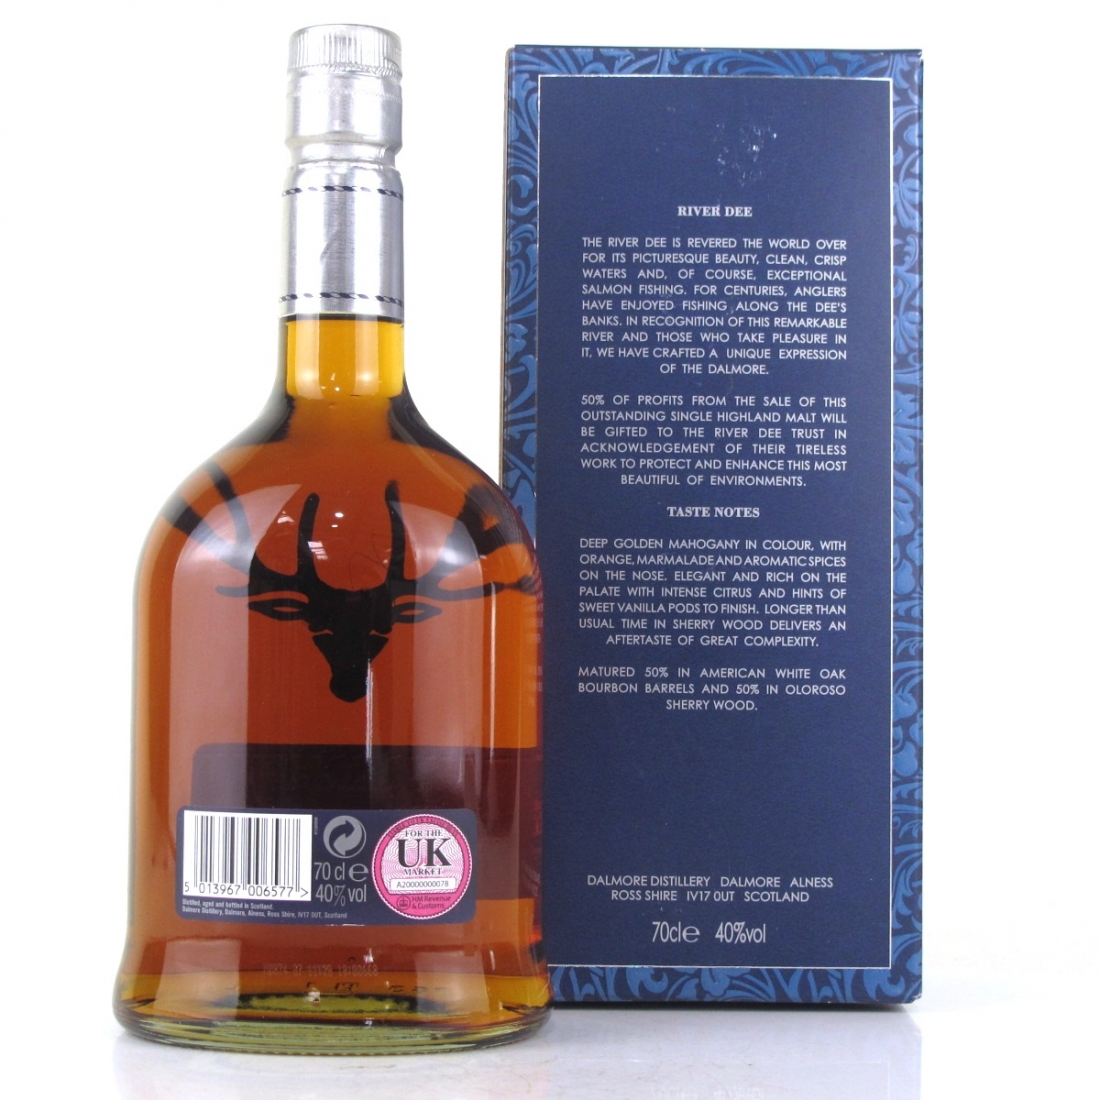 Dalmore 12 Year Old Dee Dram 2010 / First Edition